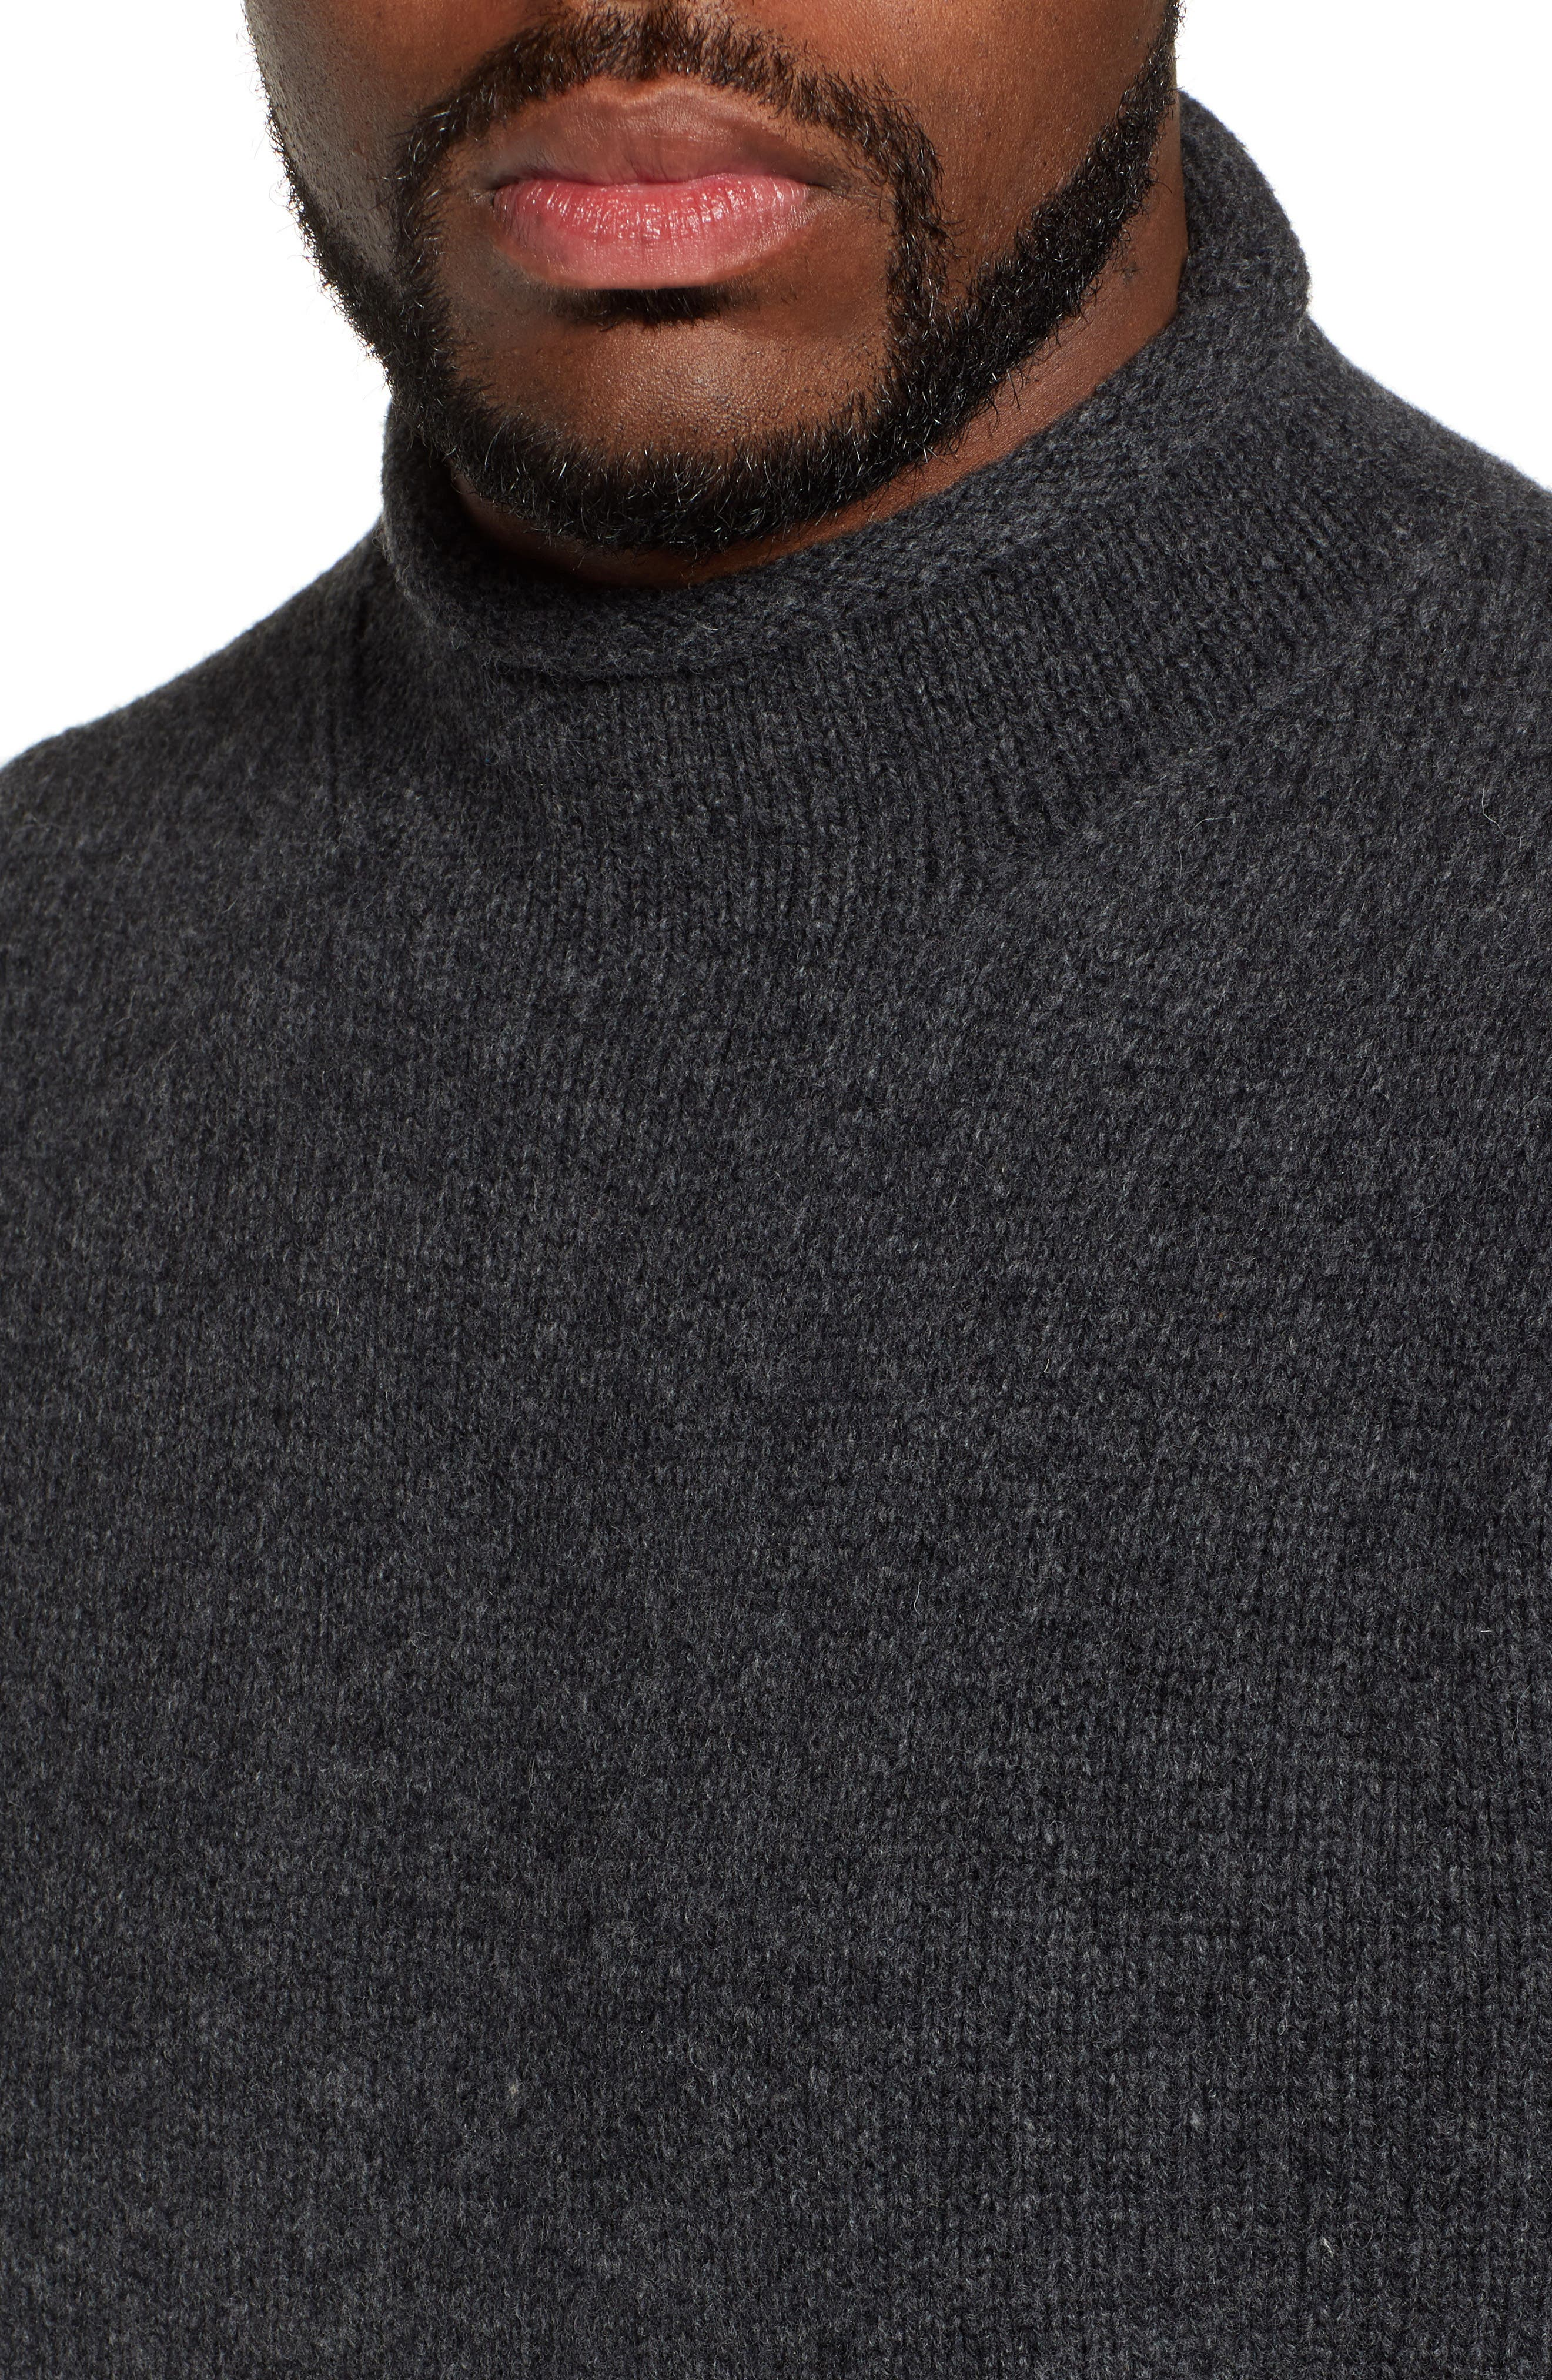 J.CREW,                             Relaxed Rollneck<sup>™</sup> Lambswool Sweater,                             Alternate thumbnail 4, color,                             020